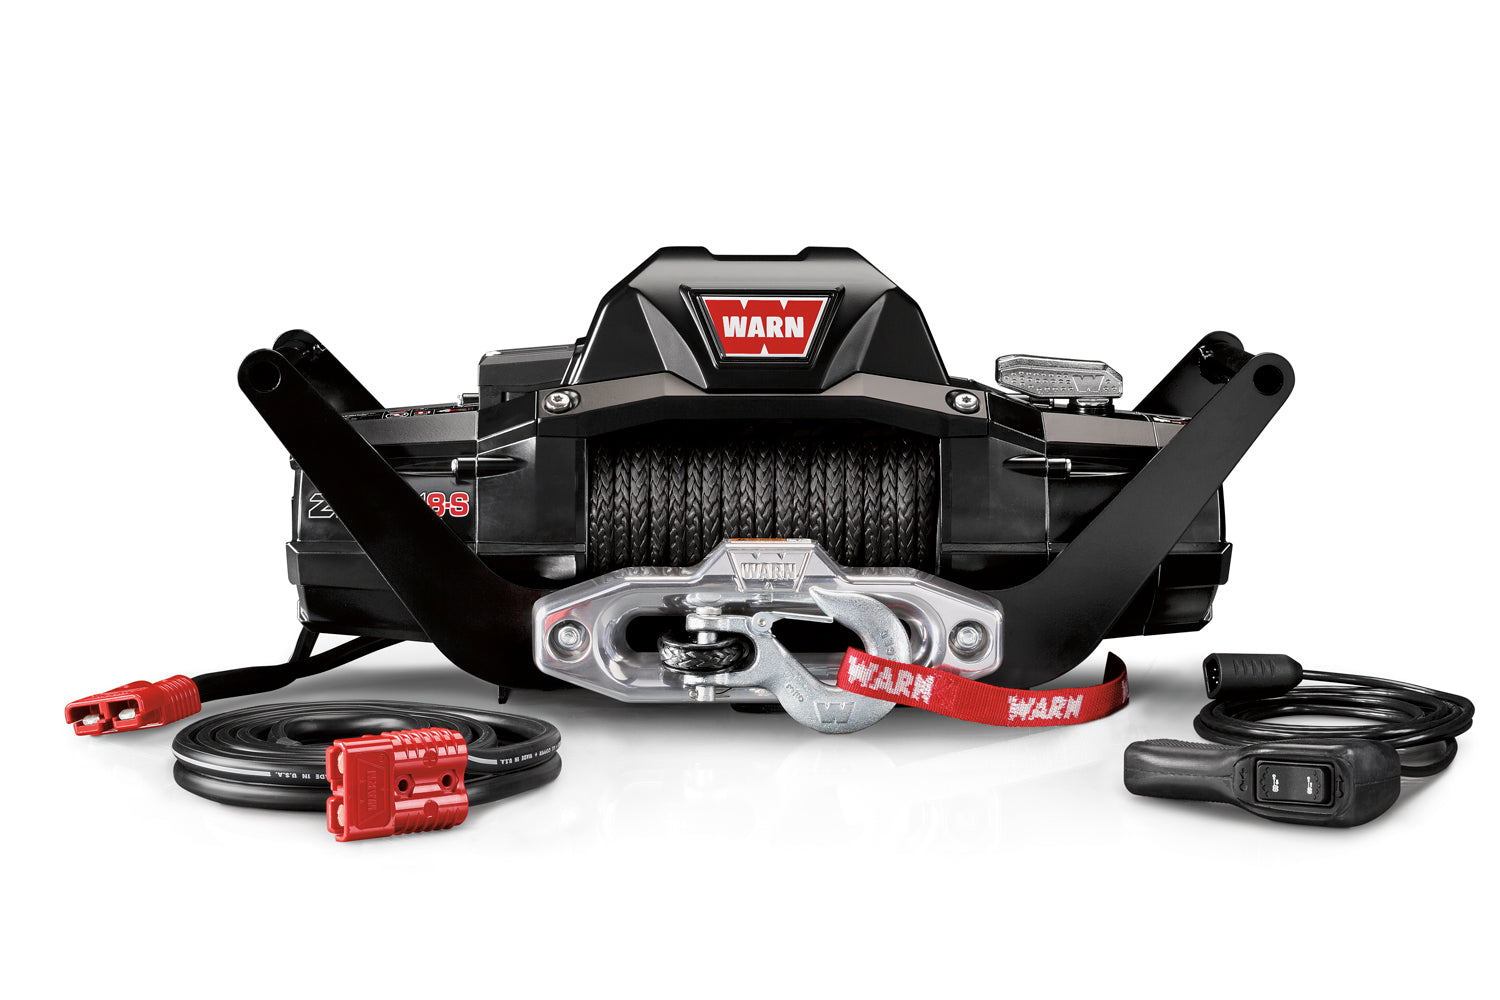 WARN ZEON 8 Winch